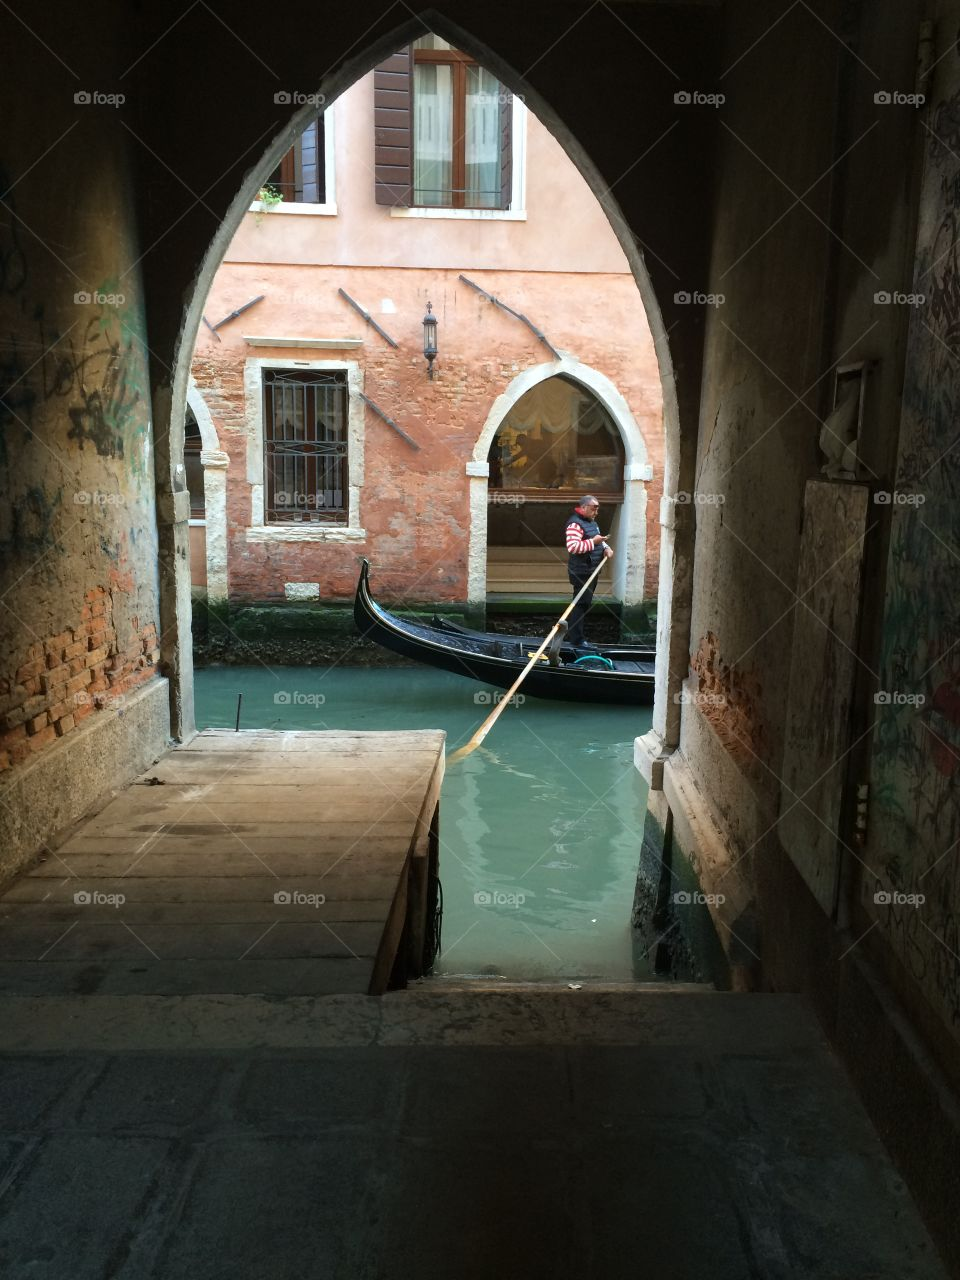 Dead end road in Venice with Gondola passing by on the canal.